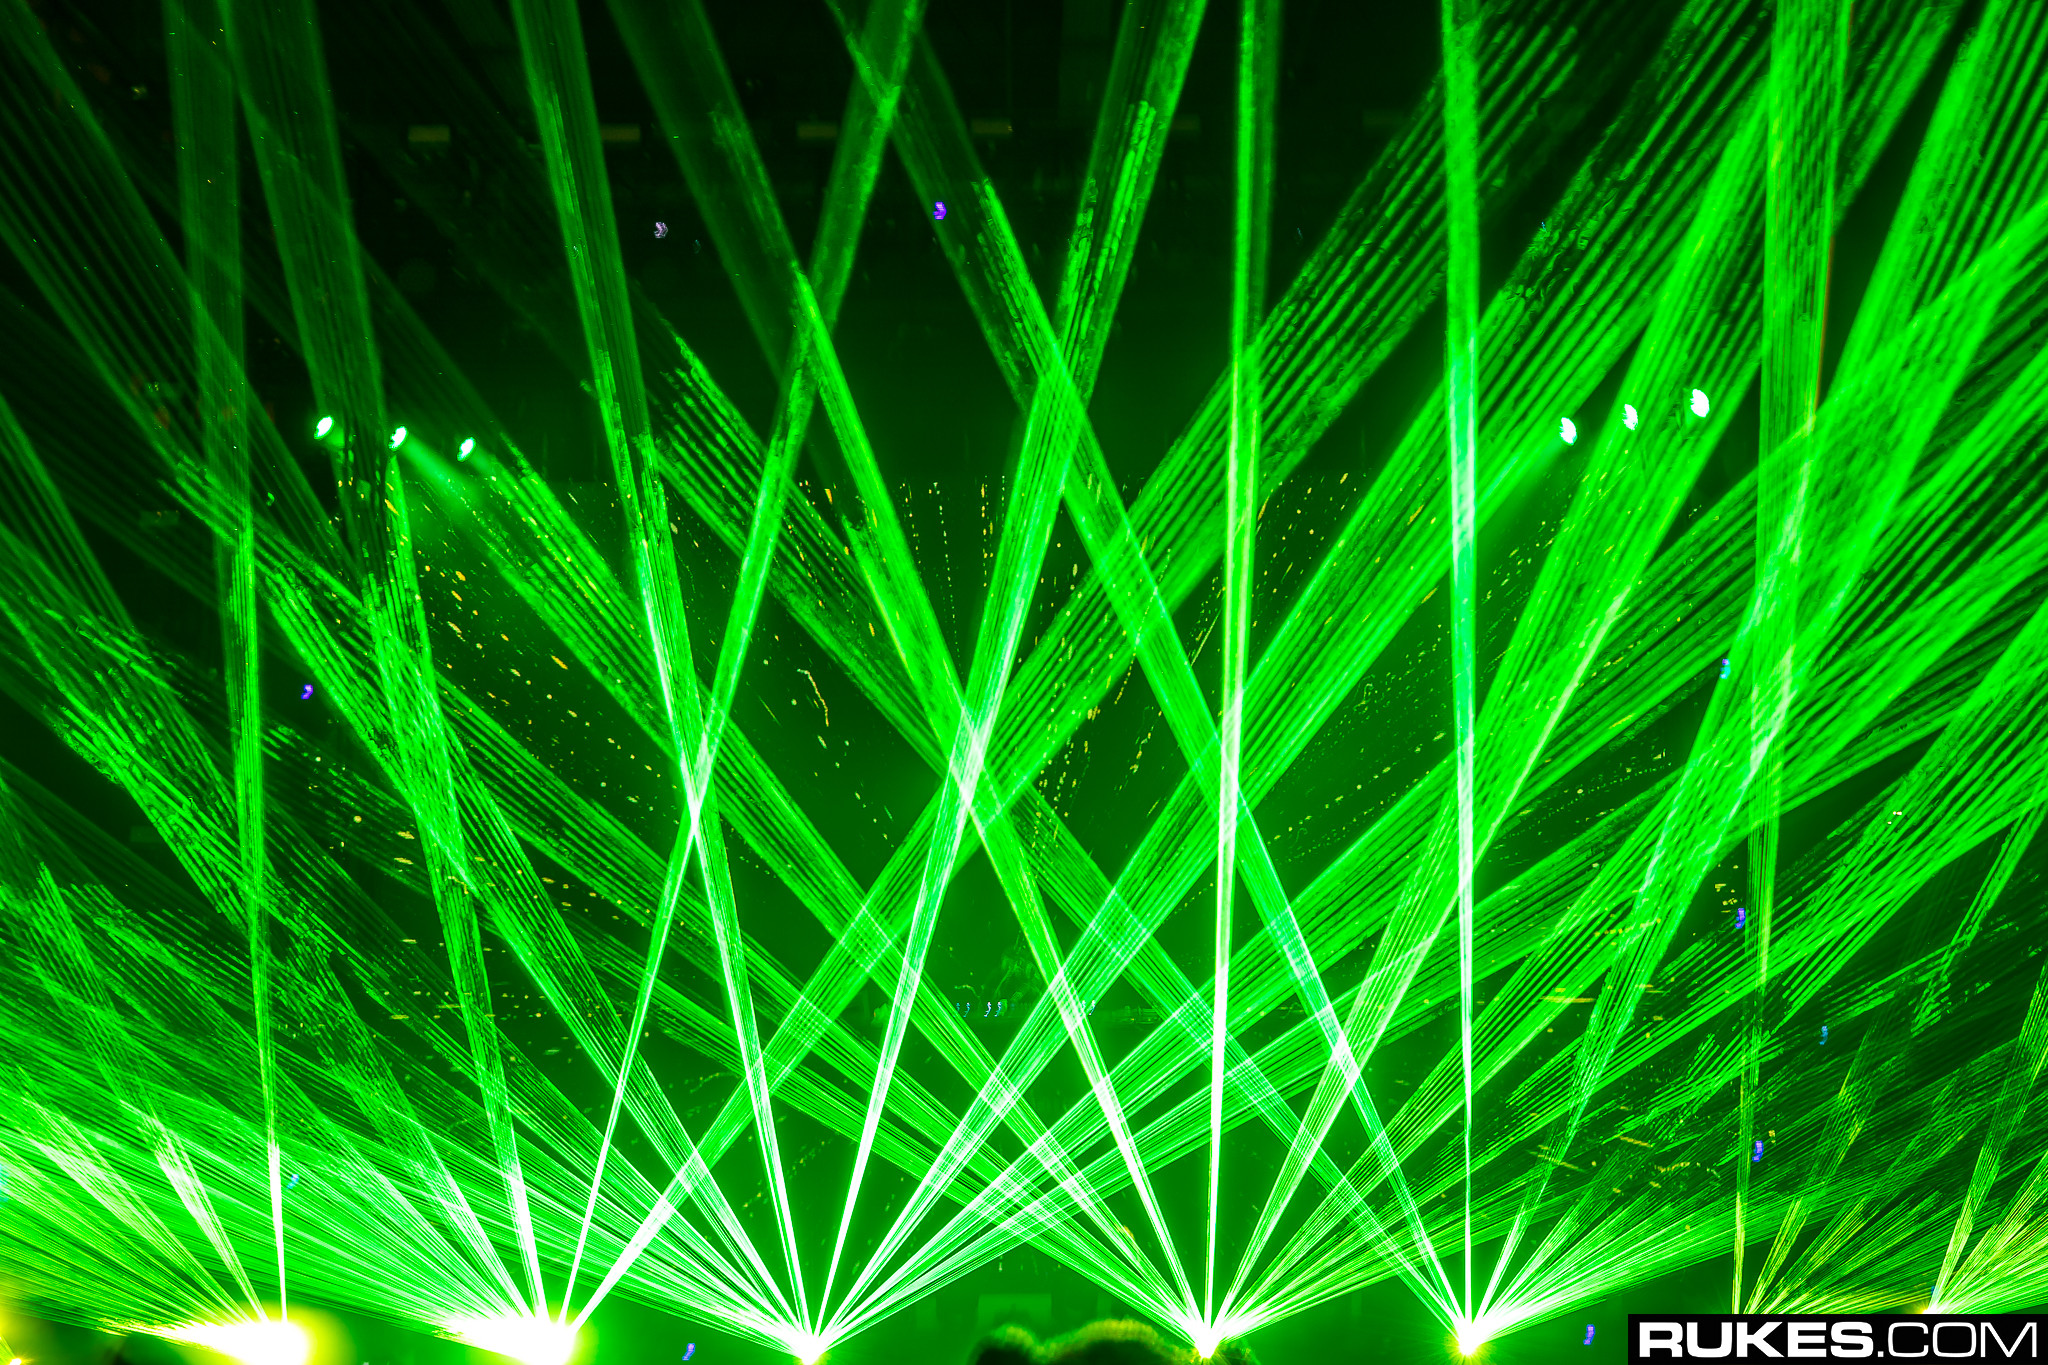 """rukes """"srcset ="""" https://www.youredm.com/wp-content/uploads/2018/10/lasers-generic-rukes.jpg 2048w, https://www.youredm.com/wp-content/uploads/ 2018/10 / lasers-generic-rukes-768x512.jpg 768w, https://www.youredm.com/wp-content/uploads/2018/10/lasers-generic-rukes-1024x683.jpg 1024w, https: // www.youredm.com/wp-content/uploads/2018/10/lasers-generic-rukes-360x240.jpg 360w """"tailles ="""" (largeur max: 2048px) 100vw, 2048px """"/></div> </div> <section class="""